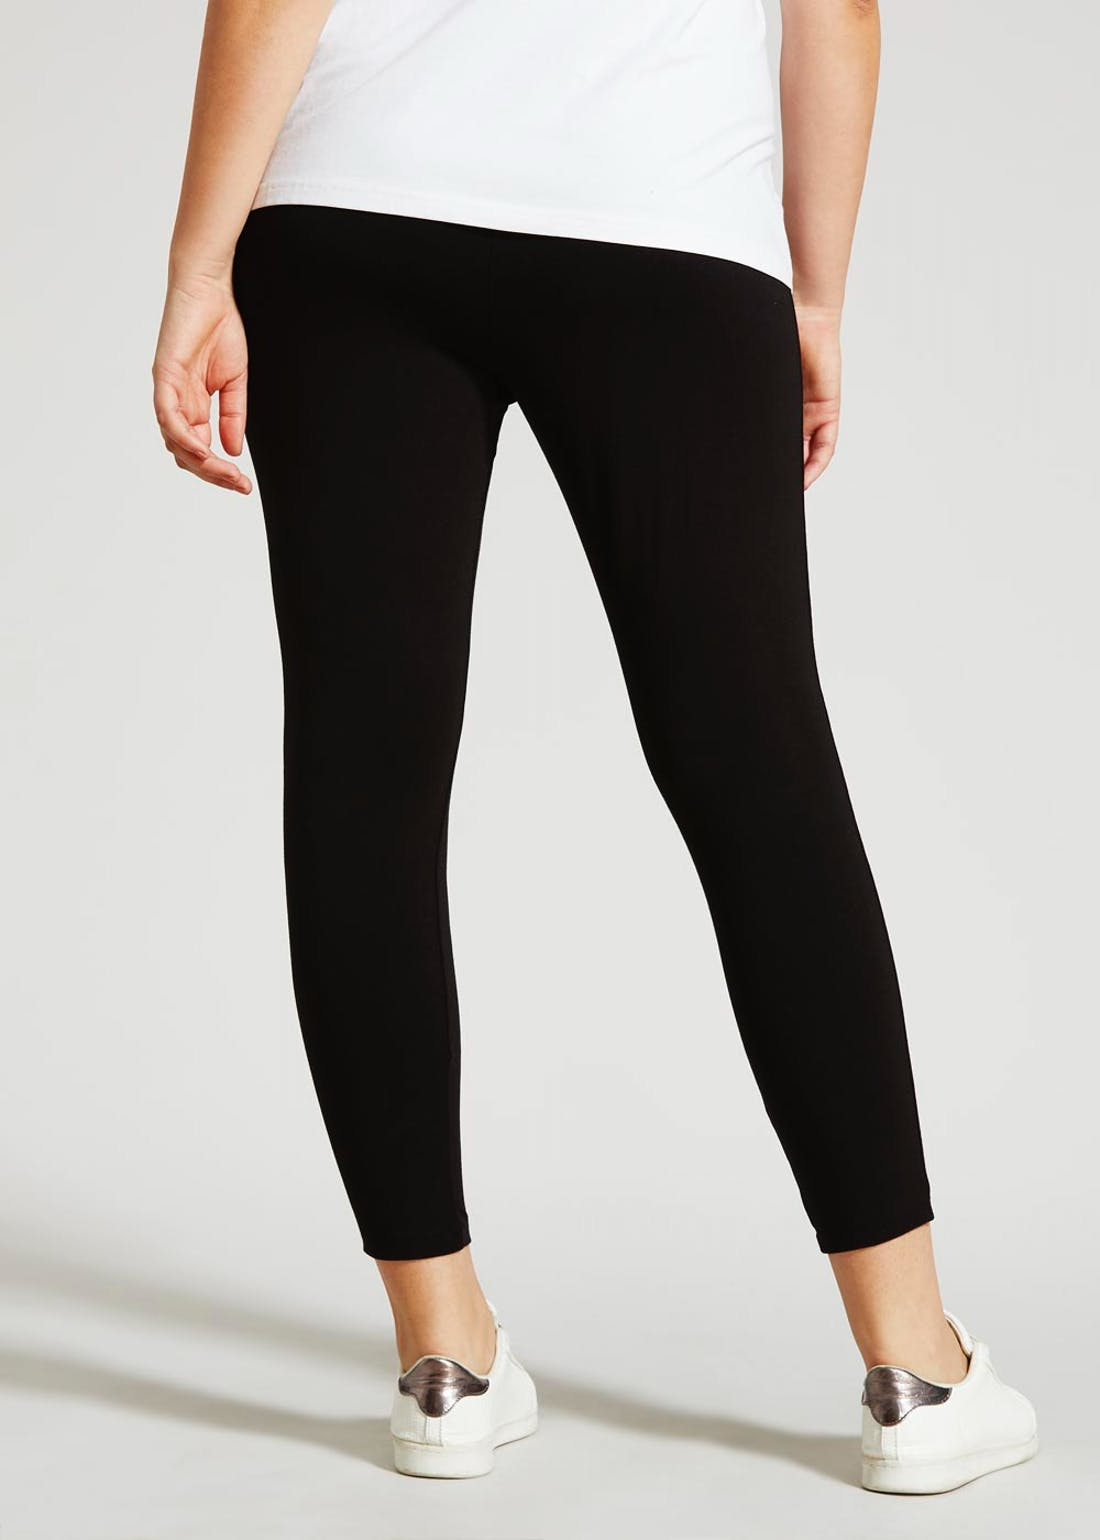 Papaya Curve Full Length Leggings